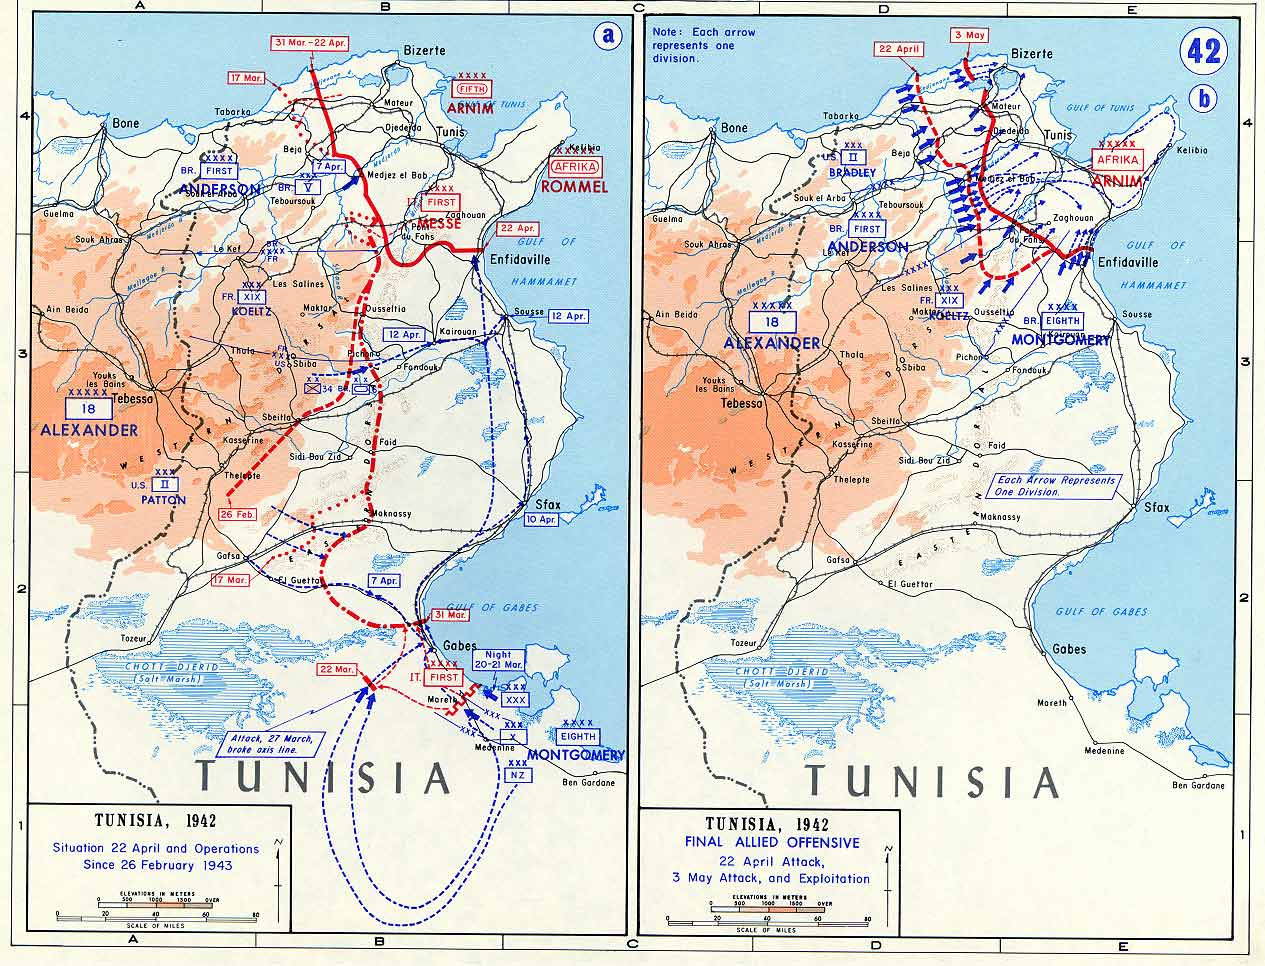 Map of Final Allied Offensive into Tunisia April May 1943